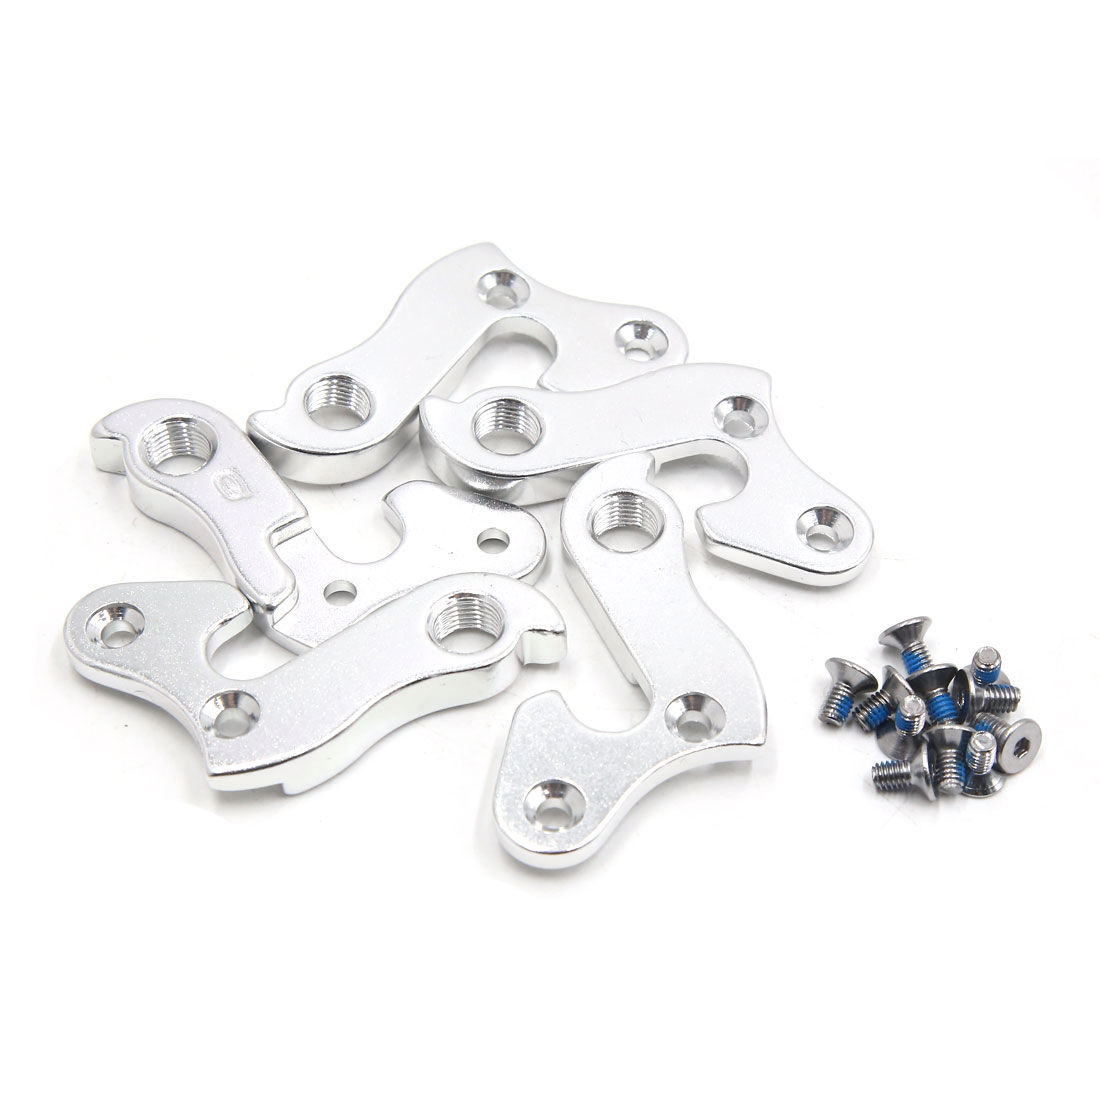 5Pcs 9mm Thread Dia Silver Tone Bicycle Derailleur Hanger Lug Pull Tail Hook